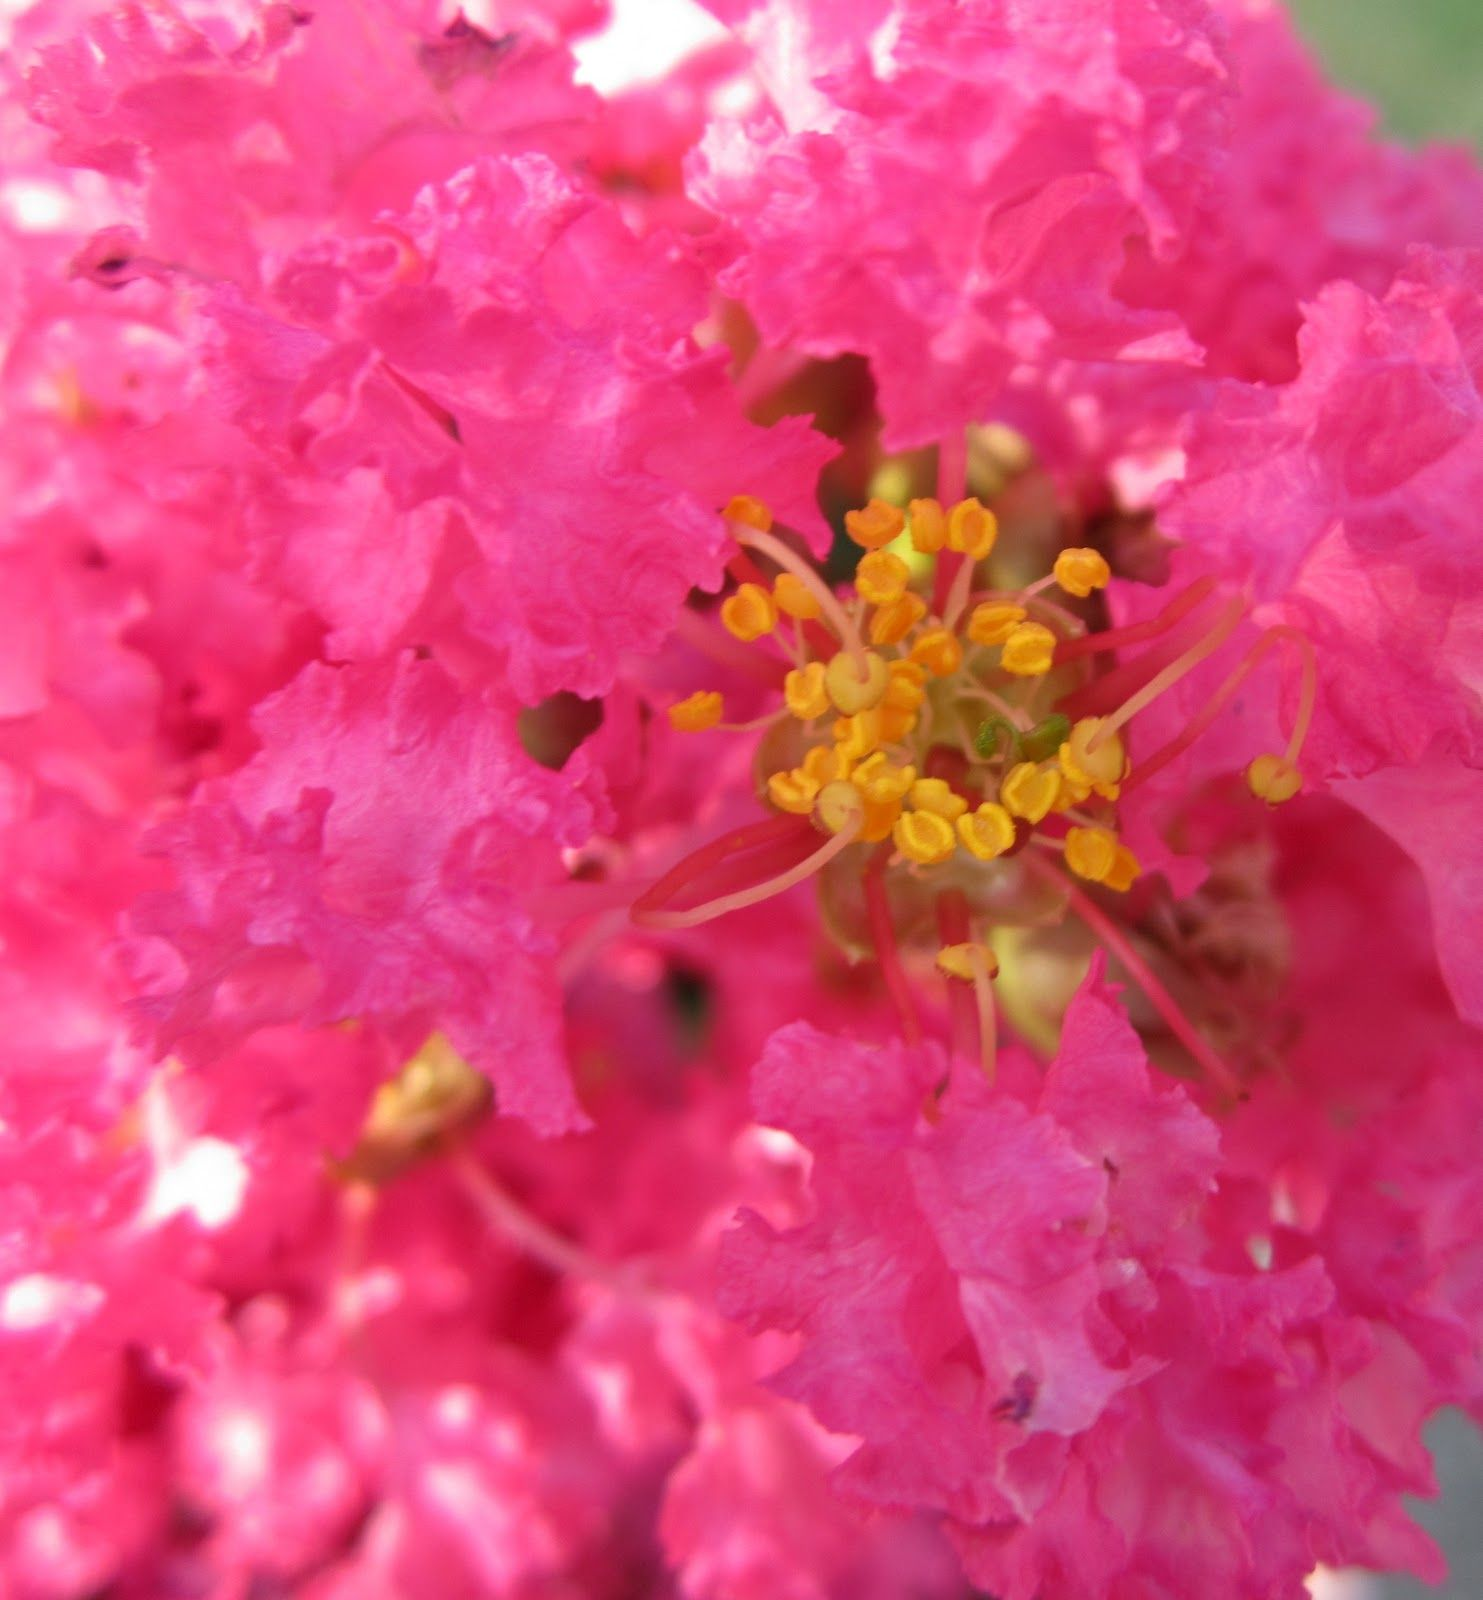 Crape or crepe myrtles are blooming all over now